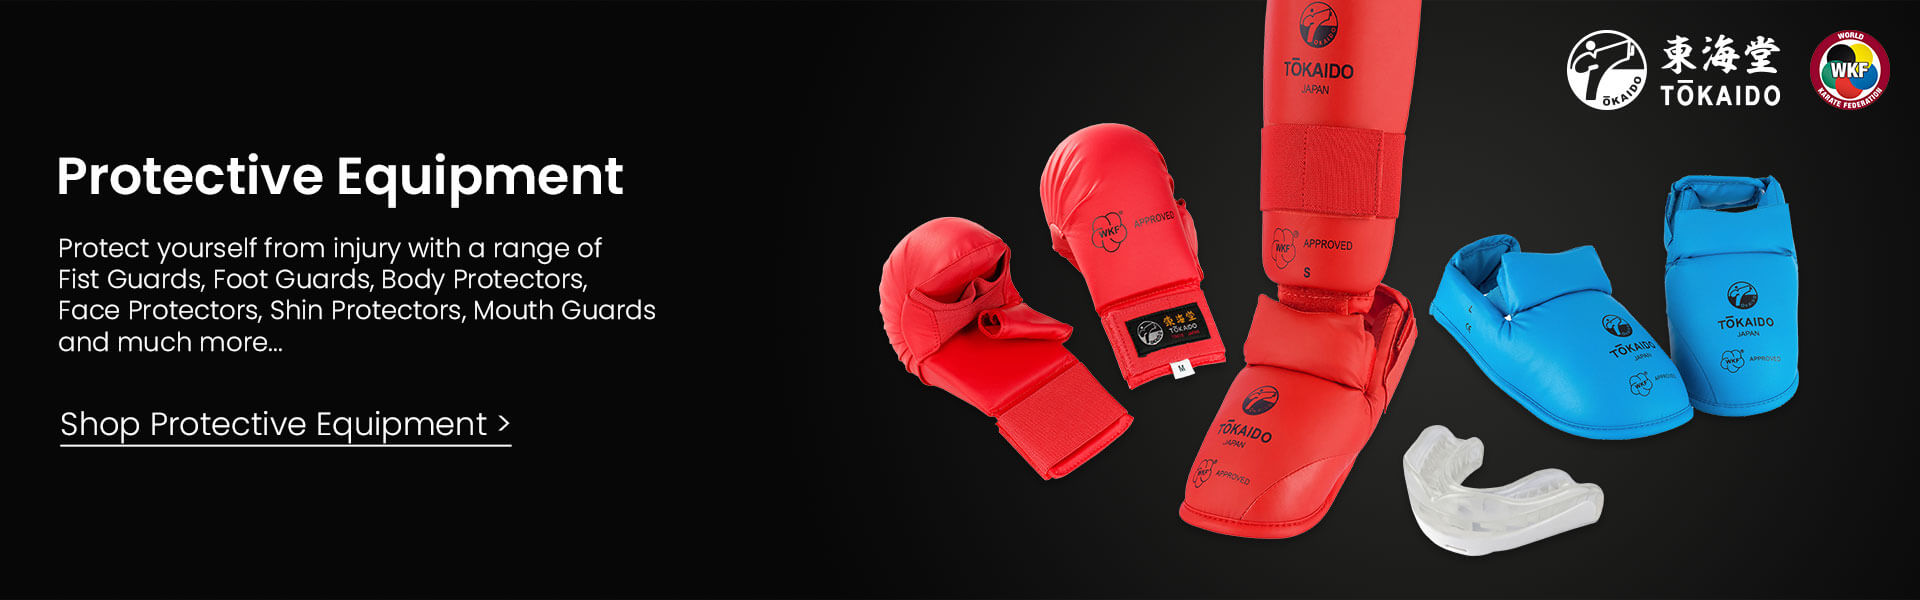 Protective Equipment - Protect yourself from injury with a range of Fist Guards, Foot Guards, Body Protectors, Face Protectors, Shin Protectors, Mouth Guards and much more...